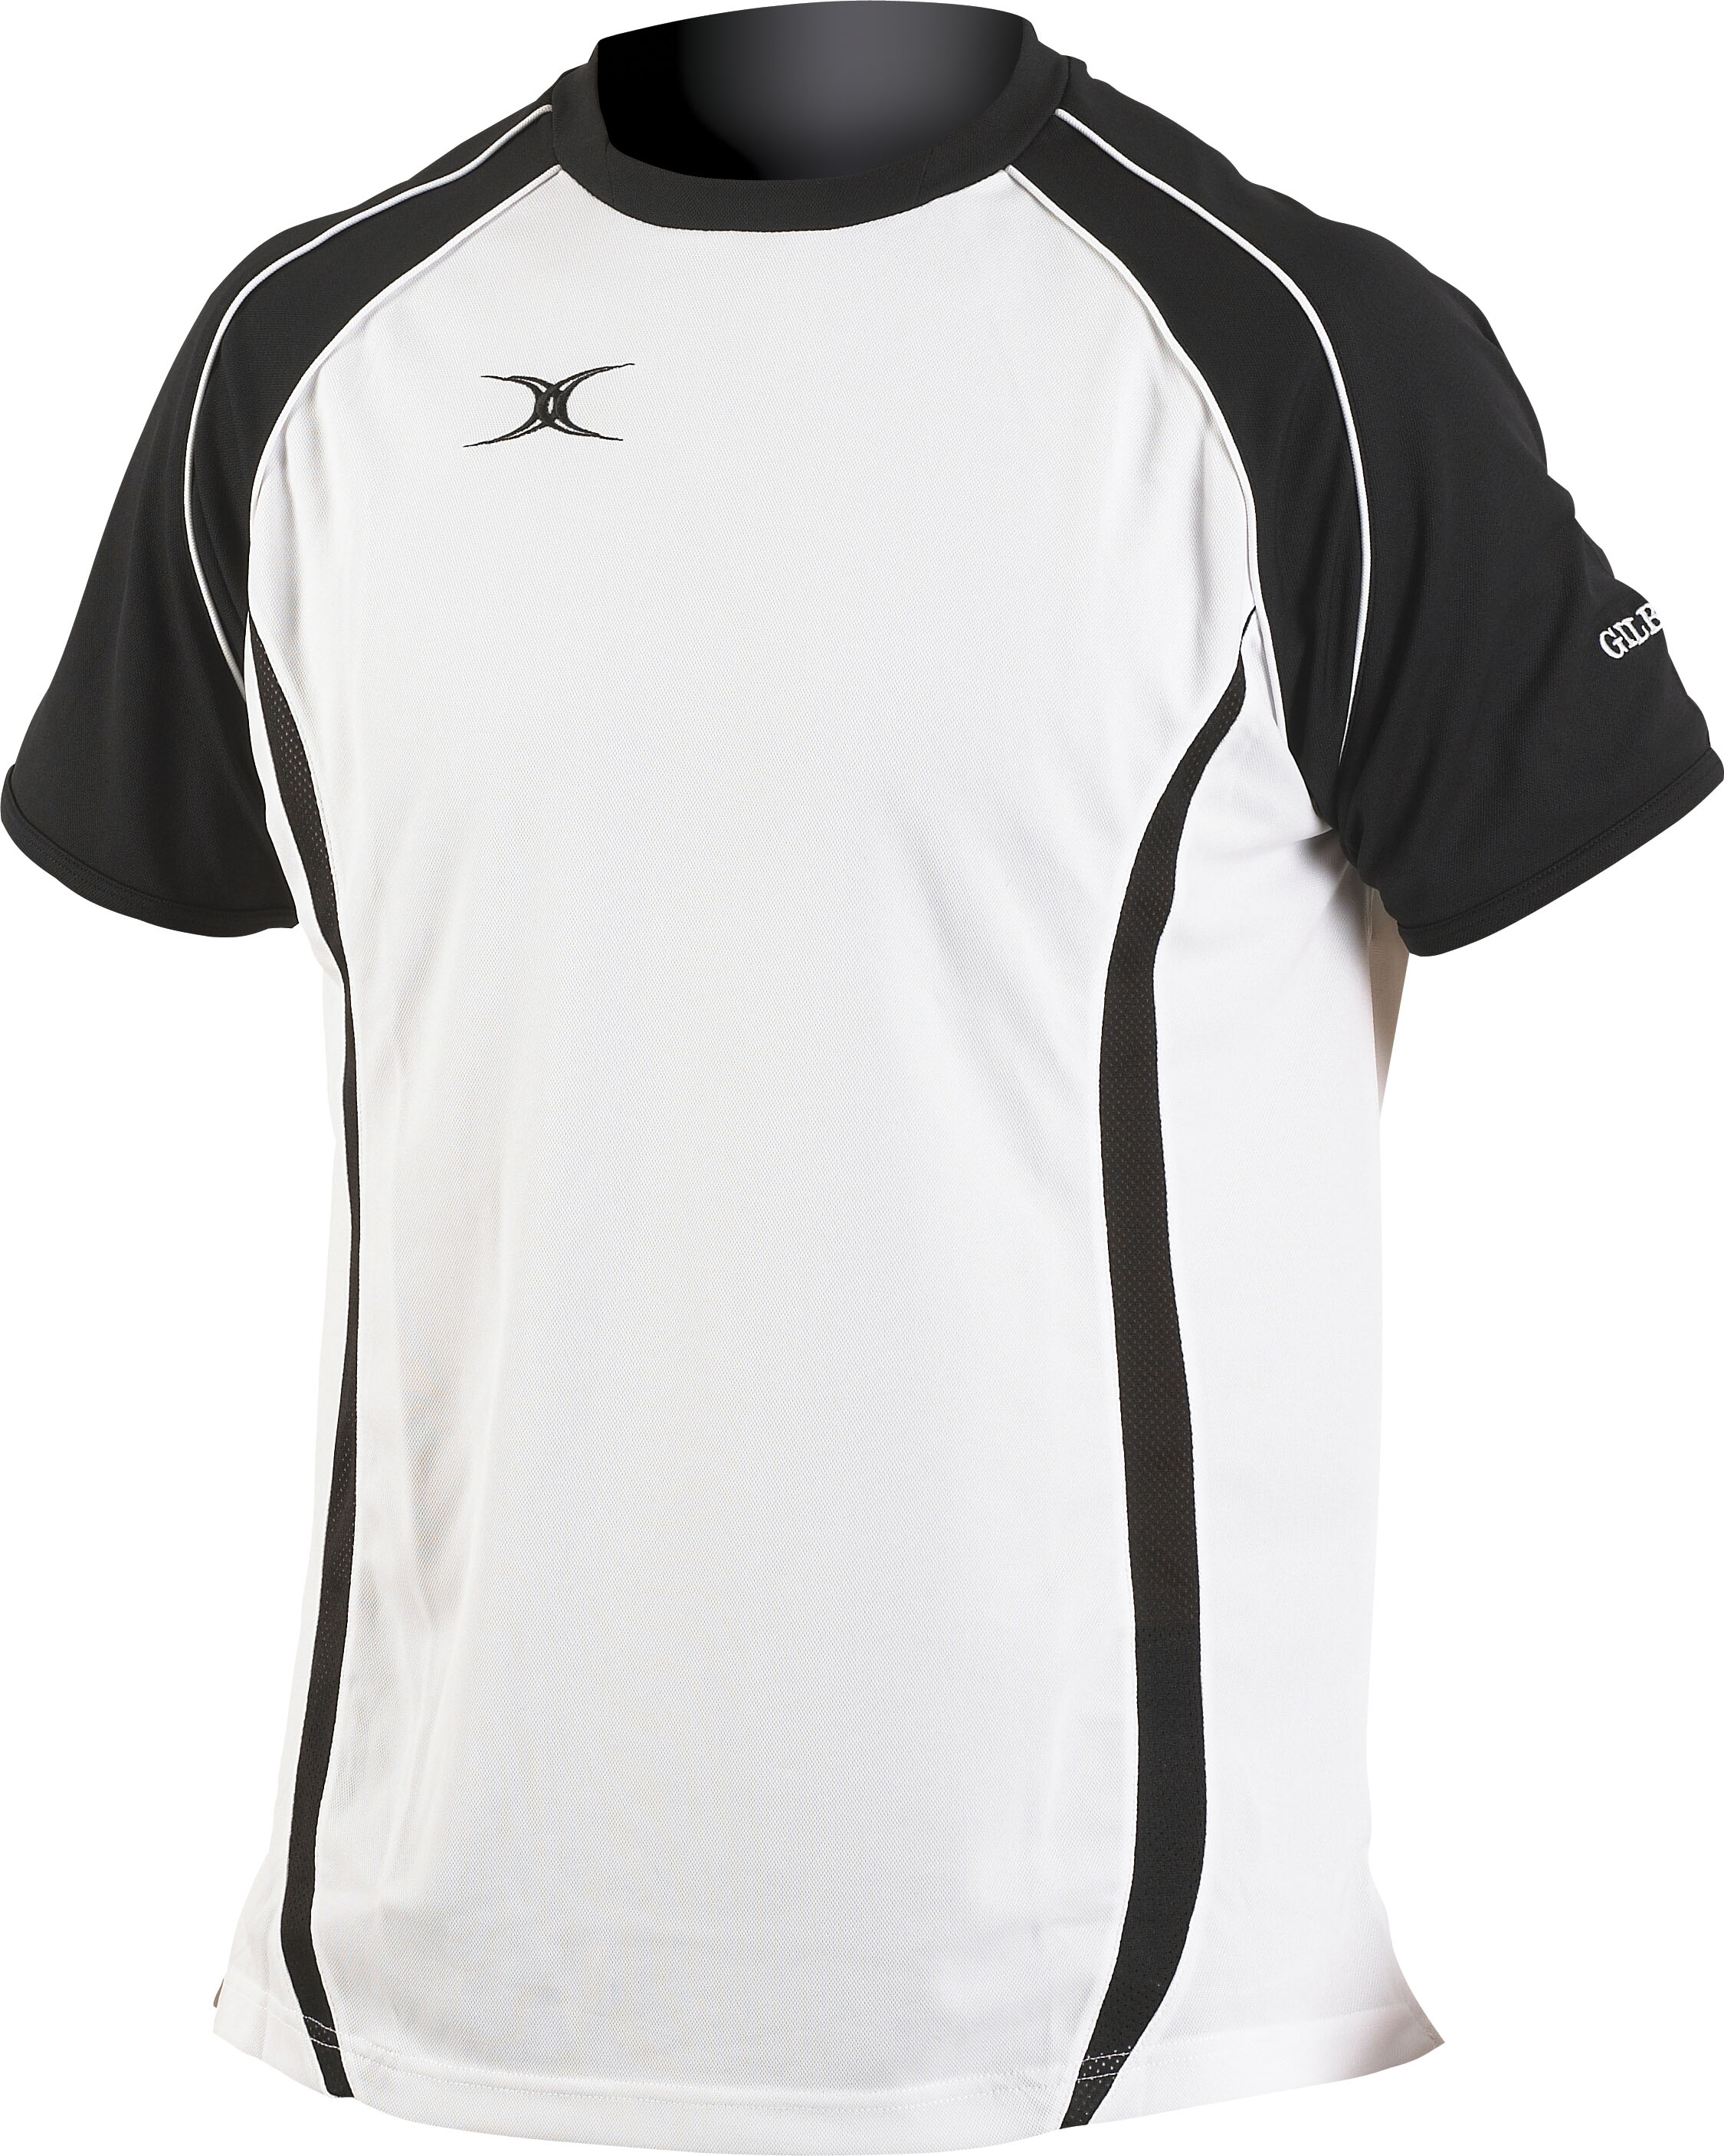 Design t shirt rugby - New Gilbert Performance Tee Durable Rugby Leisure Shirt